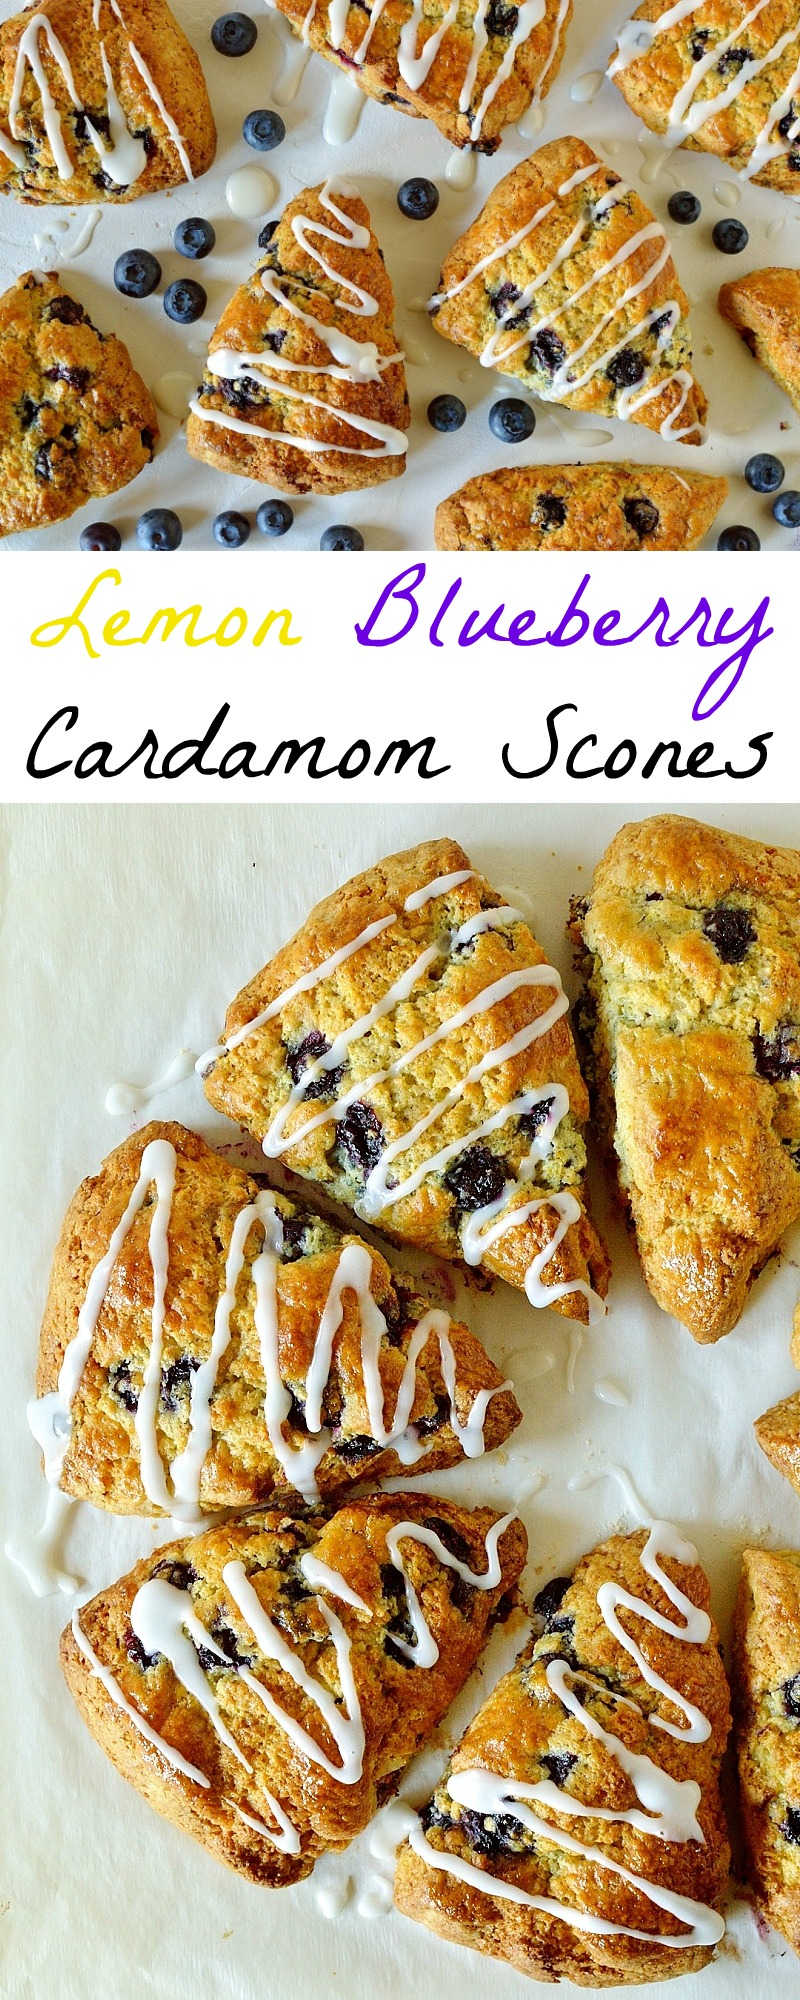 Lemon blueberry cardamom scones pinterest